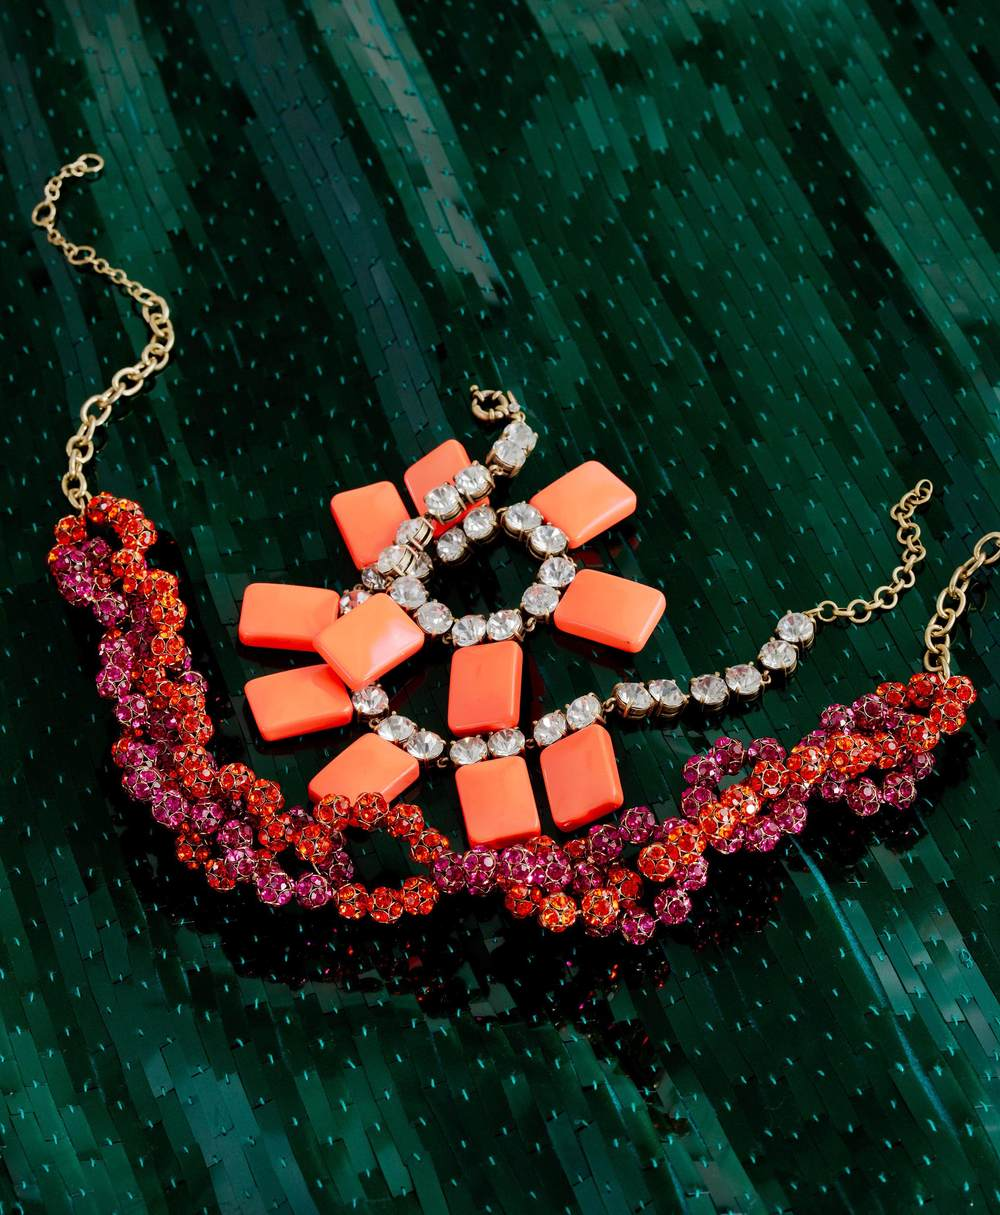 jewelry_photography_necklaces.jpg